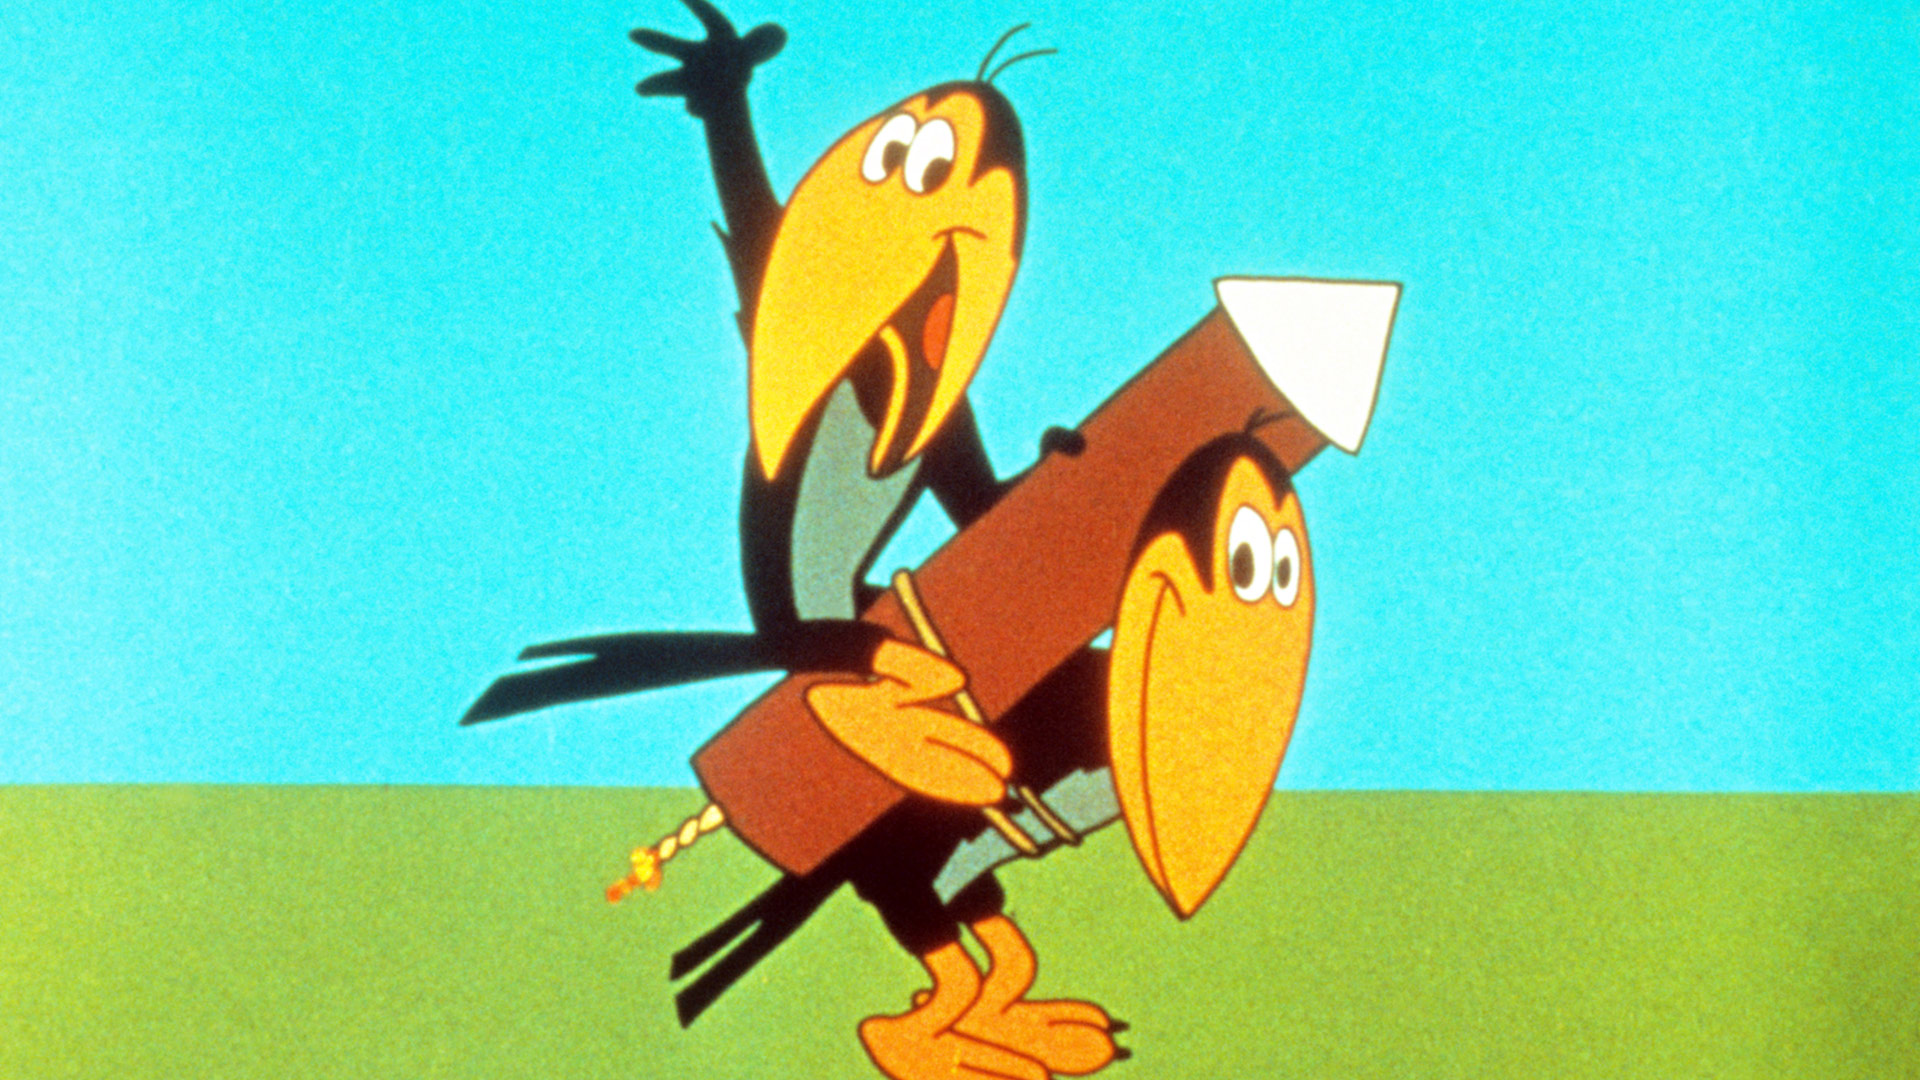 Heckle and Jeckle (1956–1960, 1965–1966; revived on NBC from 1969–1971)